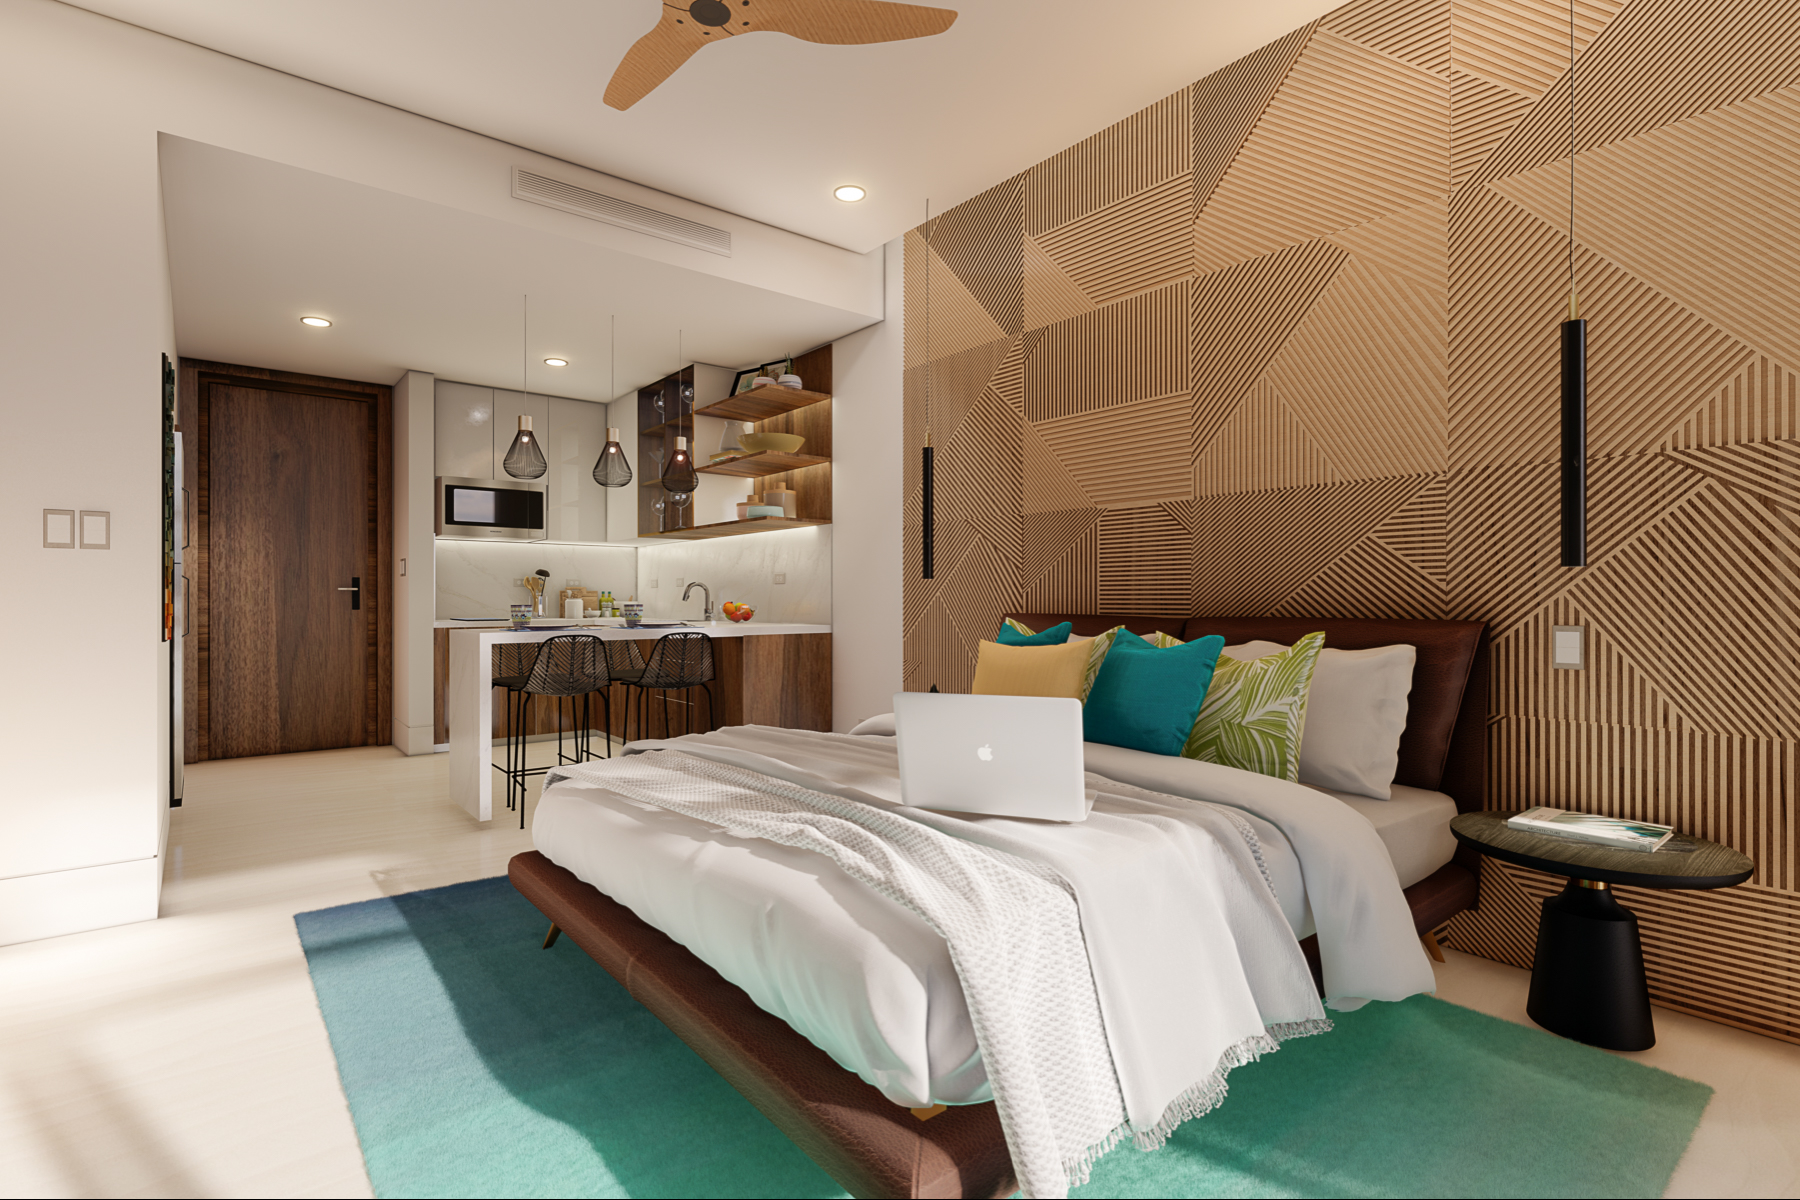 Apartments por un Venta en Island Tower - 704, E - Jaco Walk Residences Jaco, Puntarenas Costa Rica